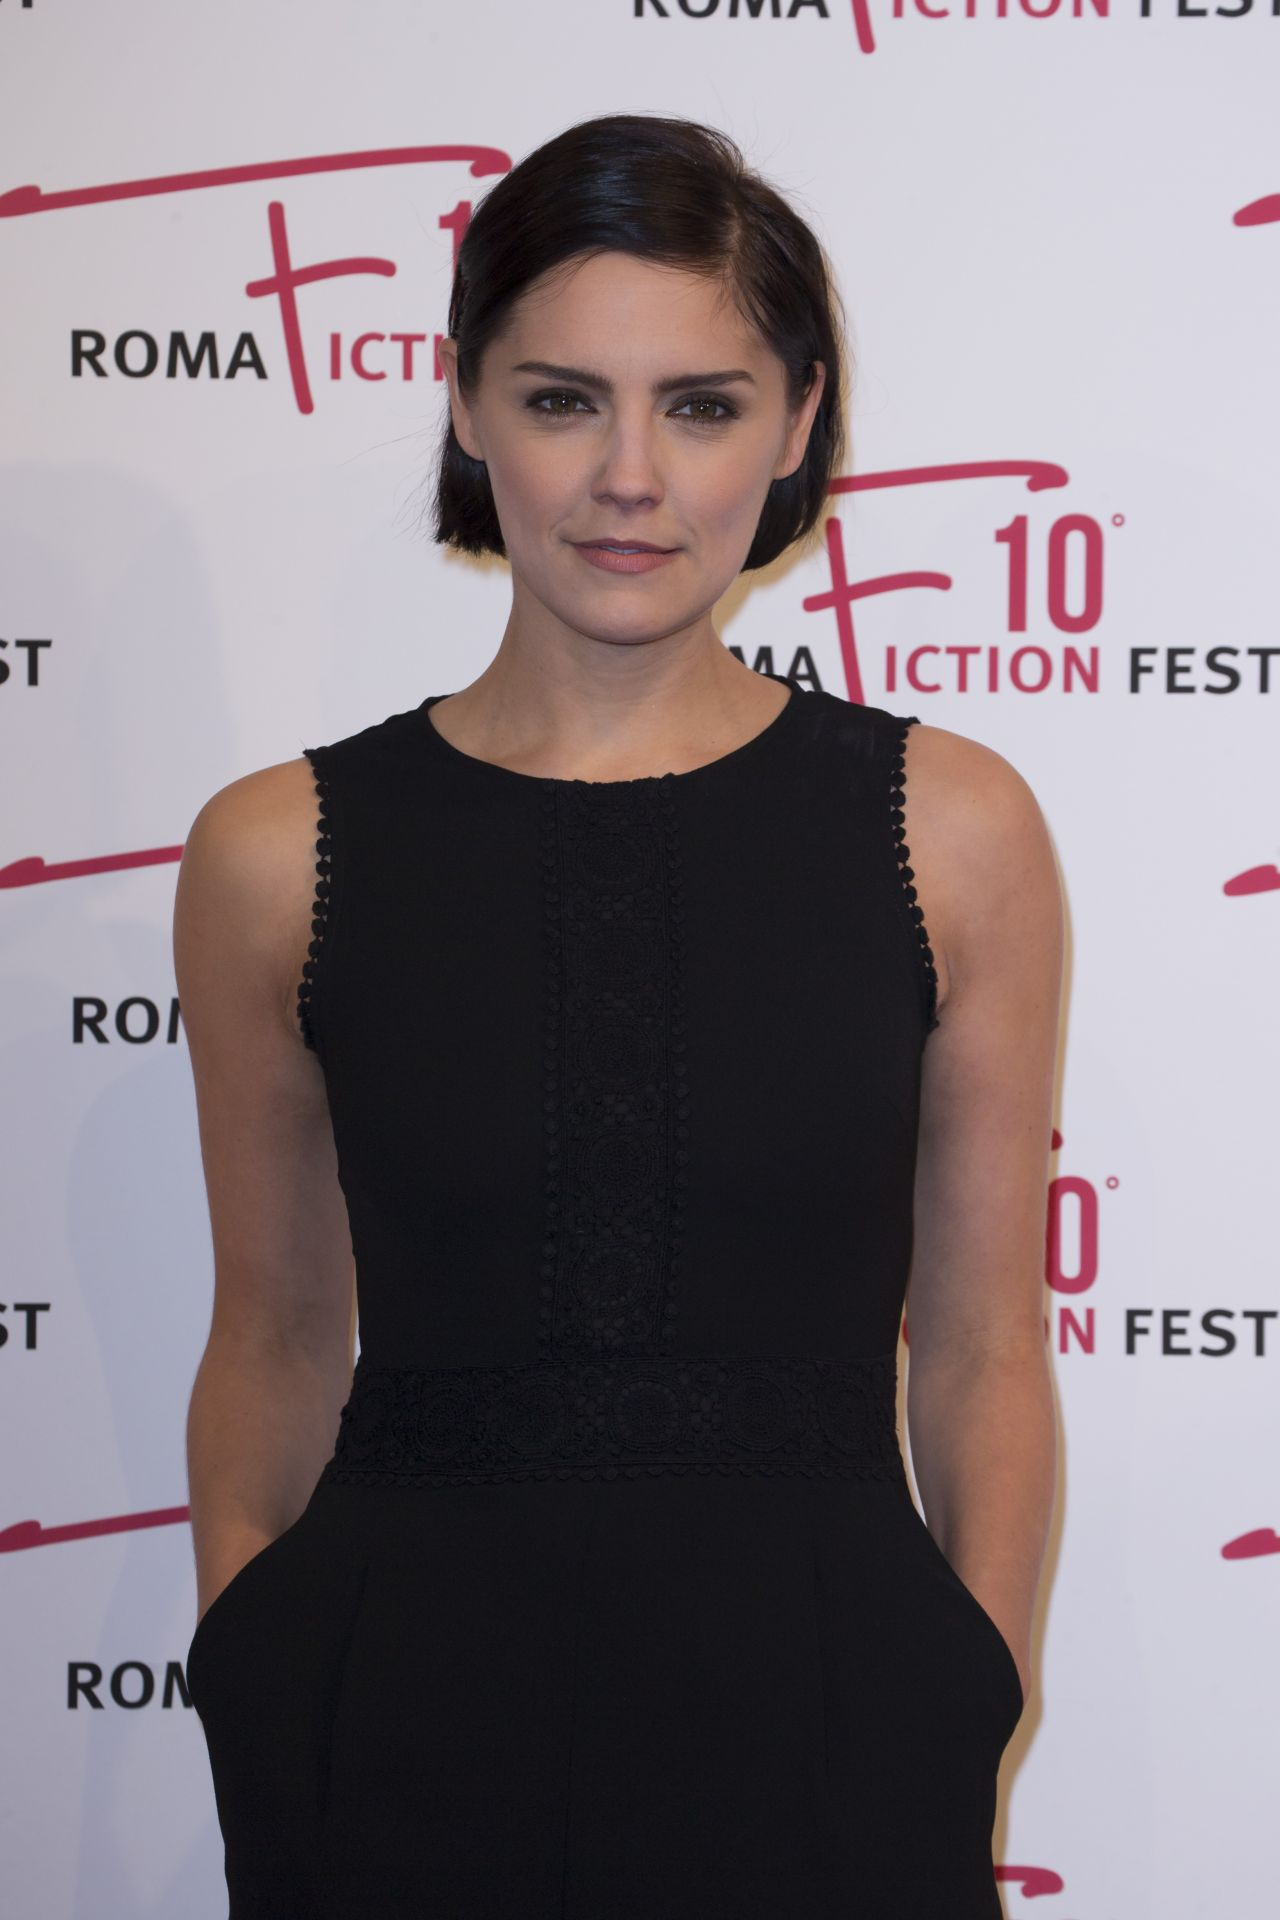 Annabel Scholey Medici annabel scholey - 'medici' premiere at roma fiction fest